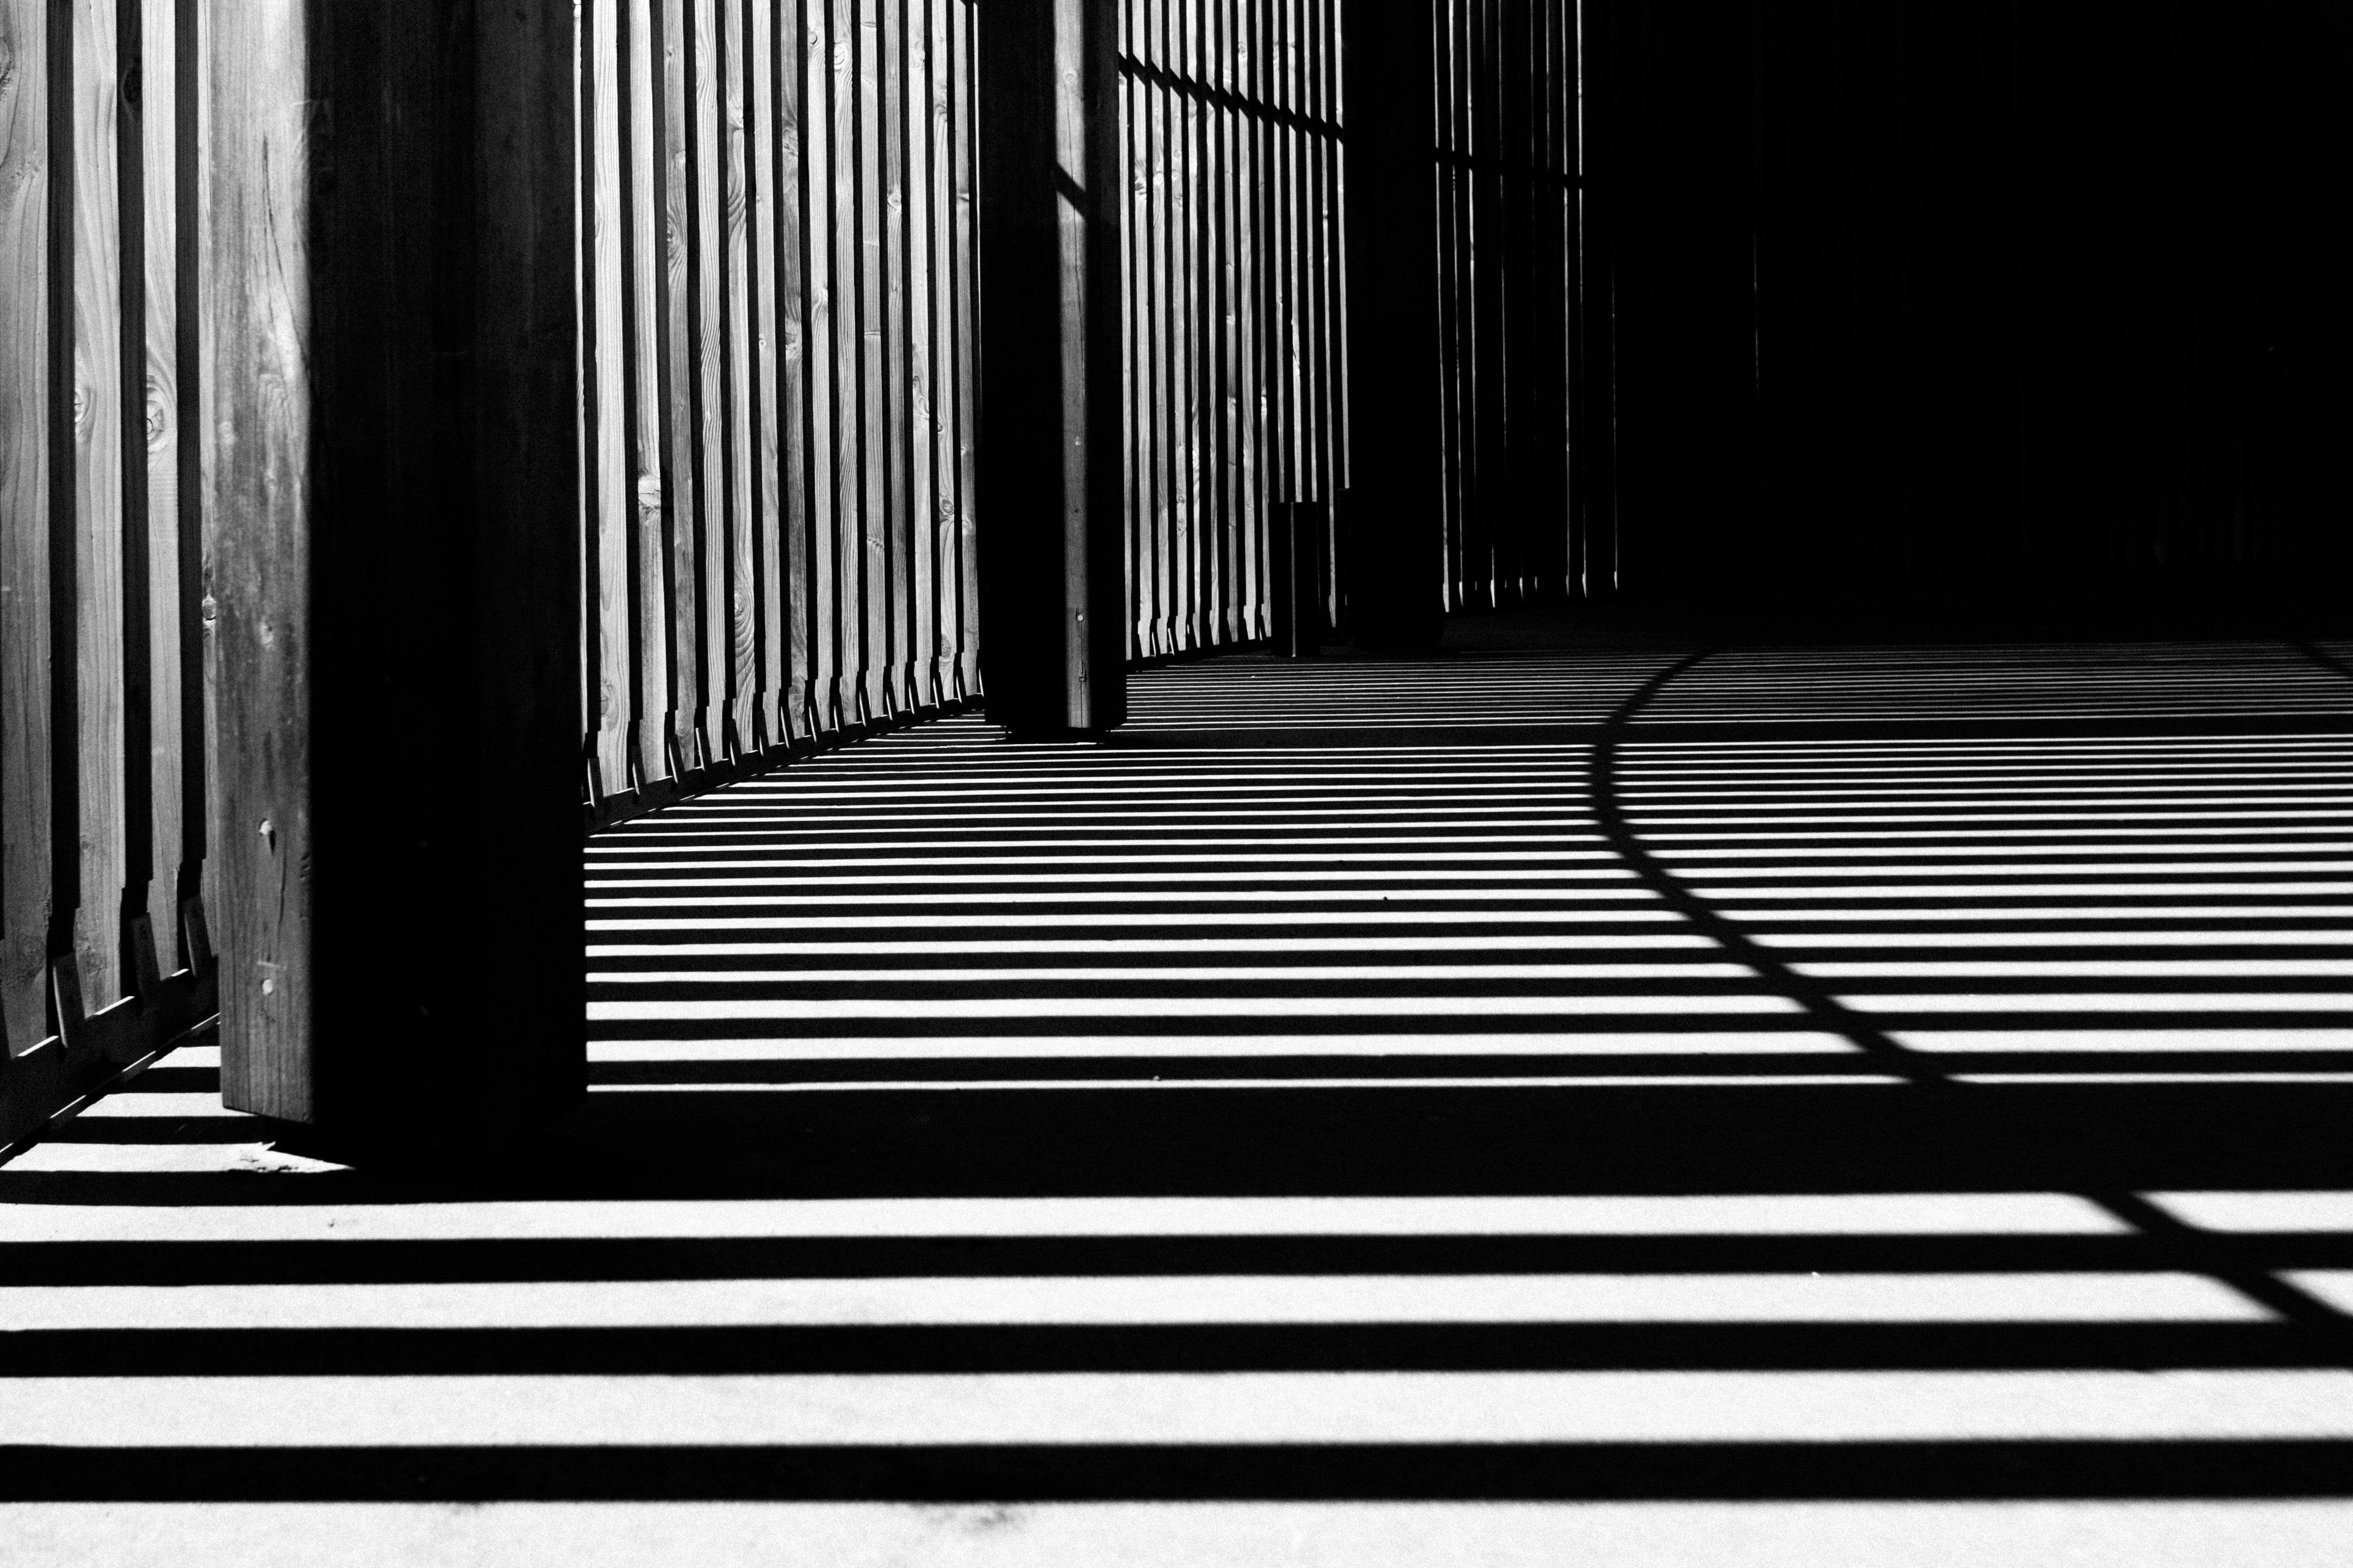 grayscale photography of cages